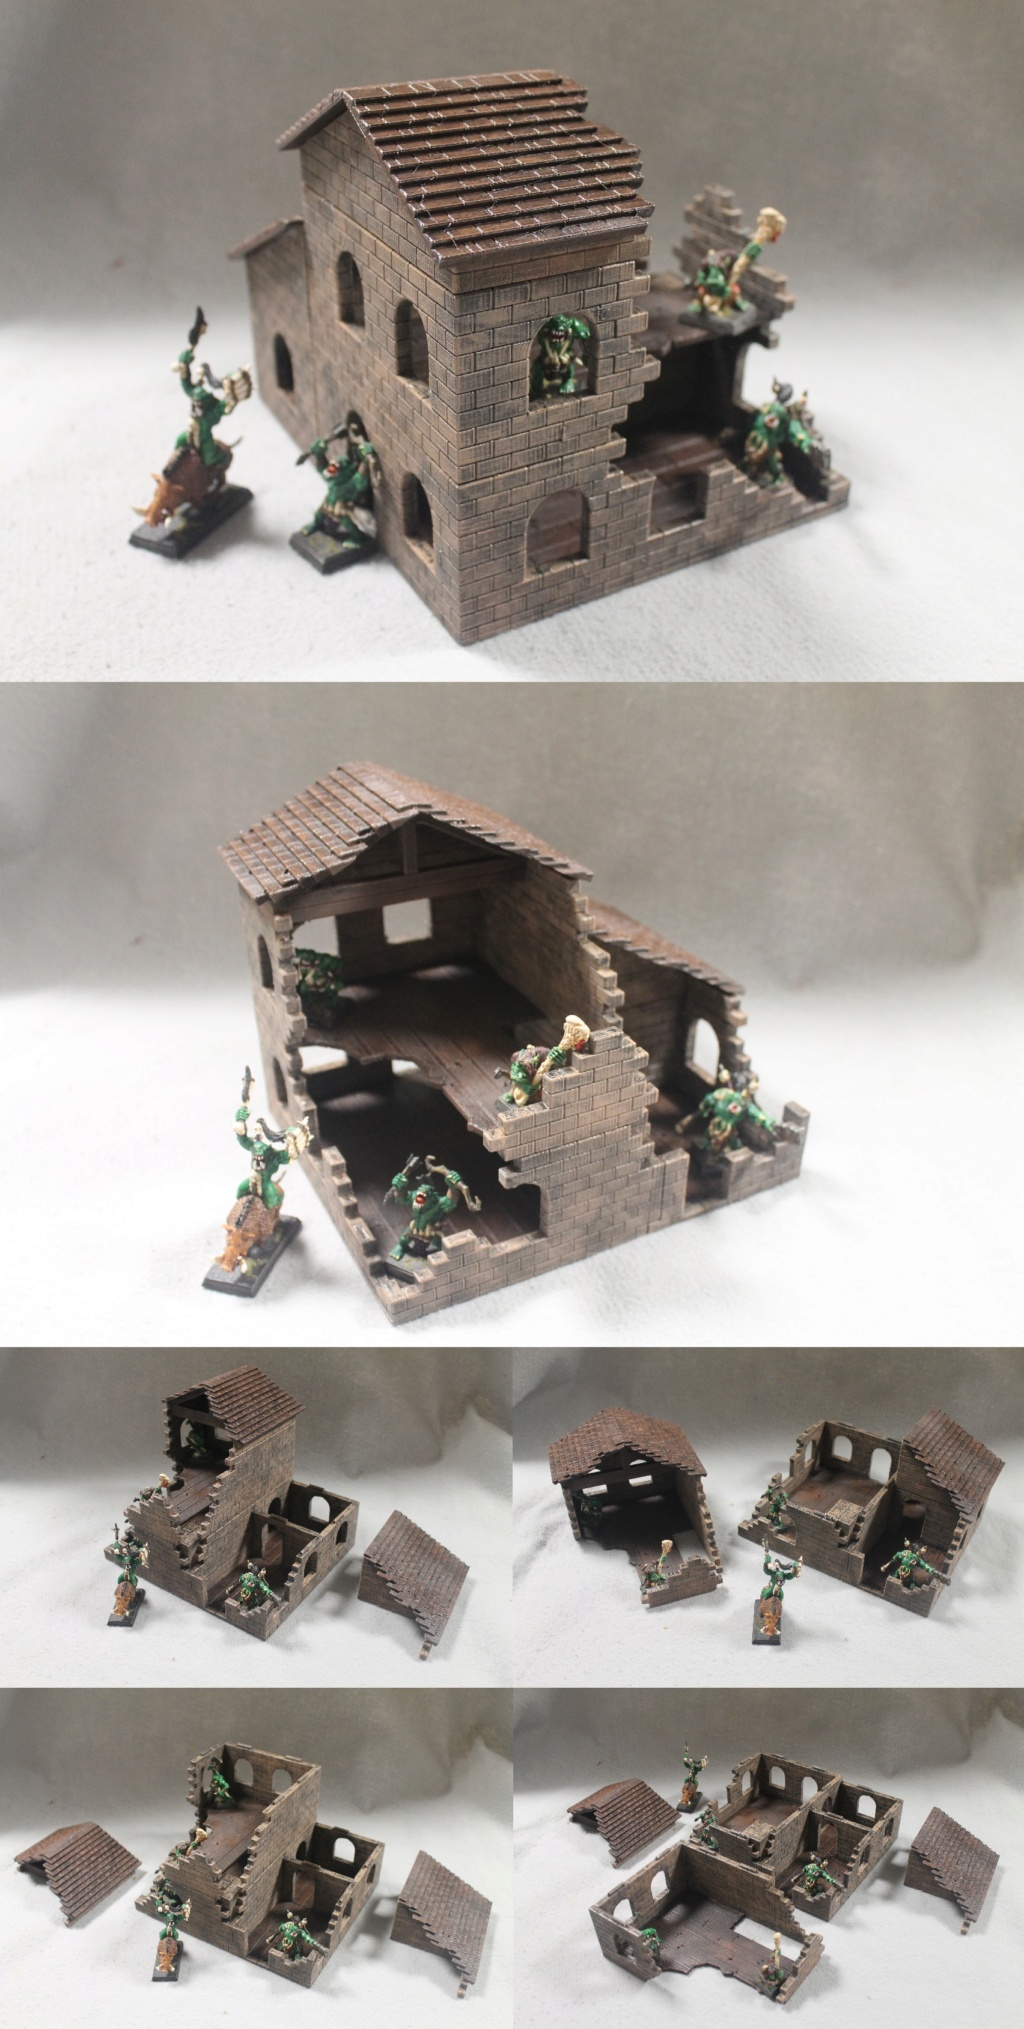 Another 3D printed building Slant_11